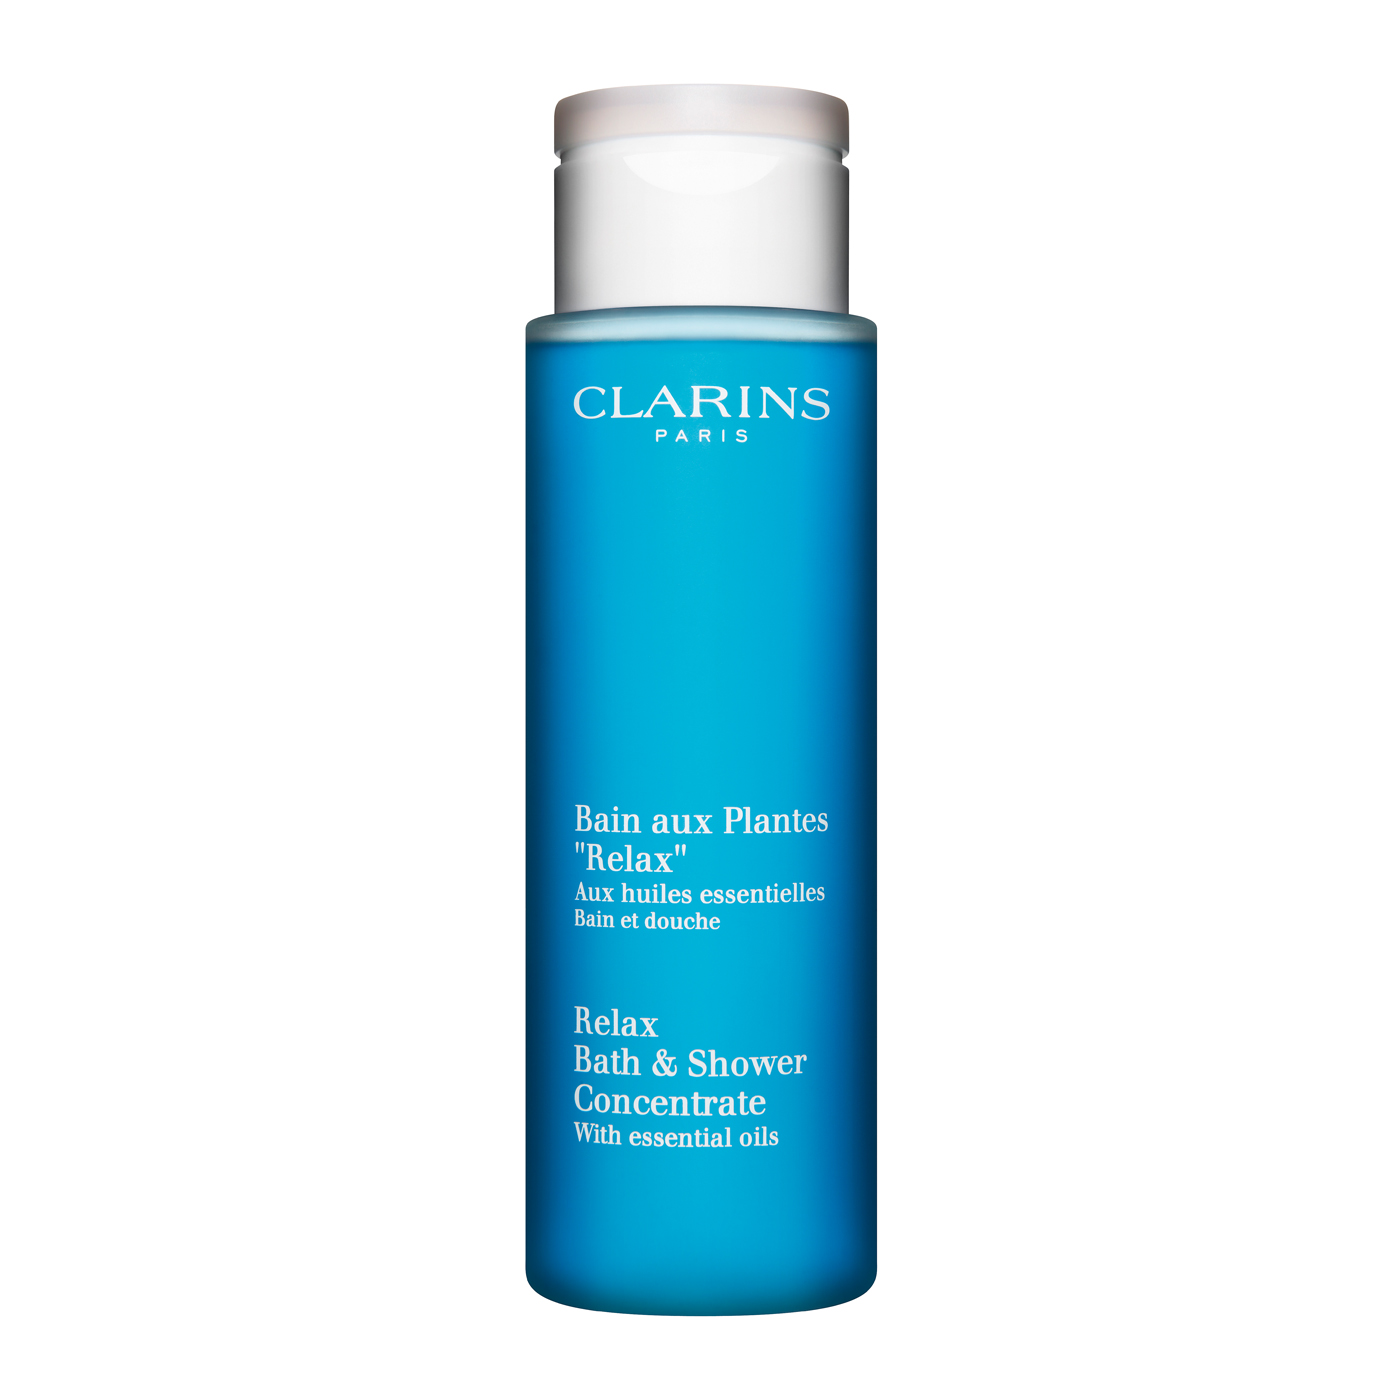 Relax Bath Amp Shower Concentrate With 100 Pure Plant Extracts Bath Amp Shower Clarins